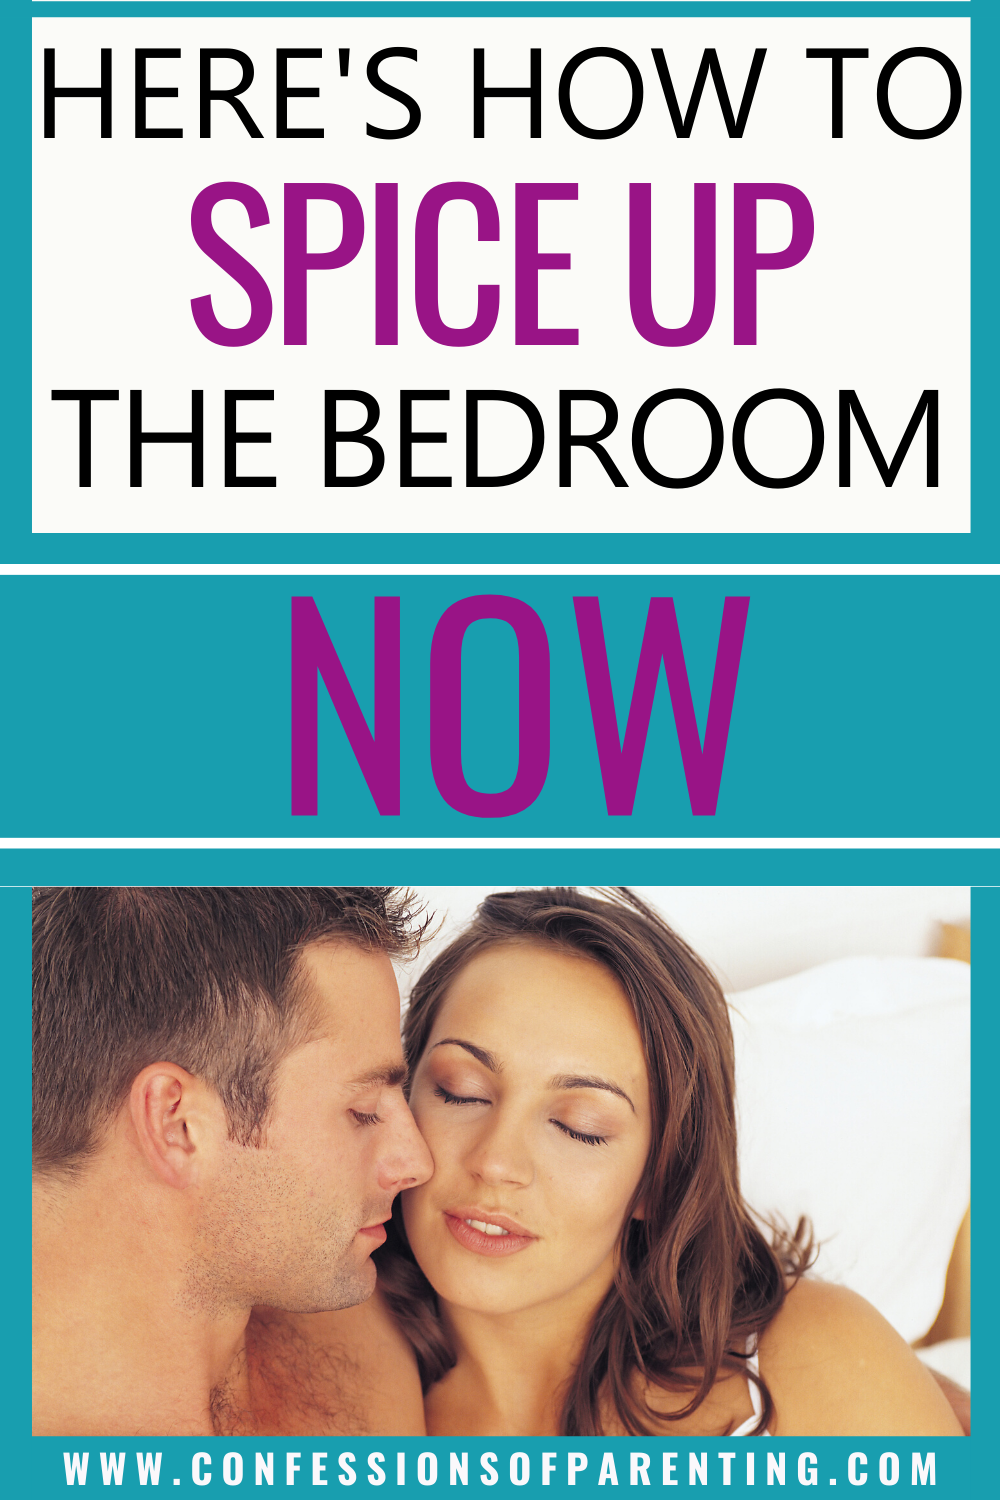 30 Ways To Spice Up Your Marriage Confessions Of Parenting In 2020 Spice Things Up Marriage Dubai Khalifa